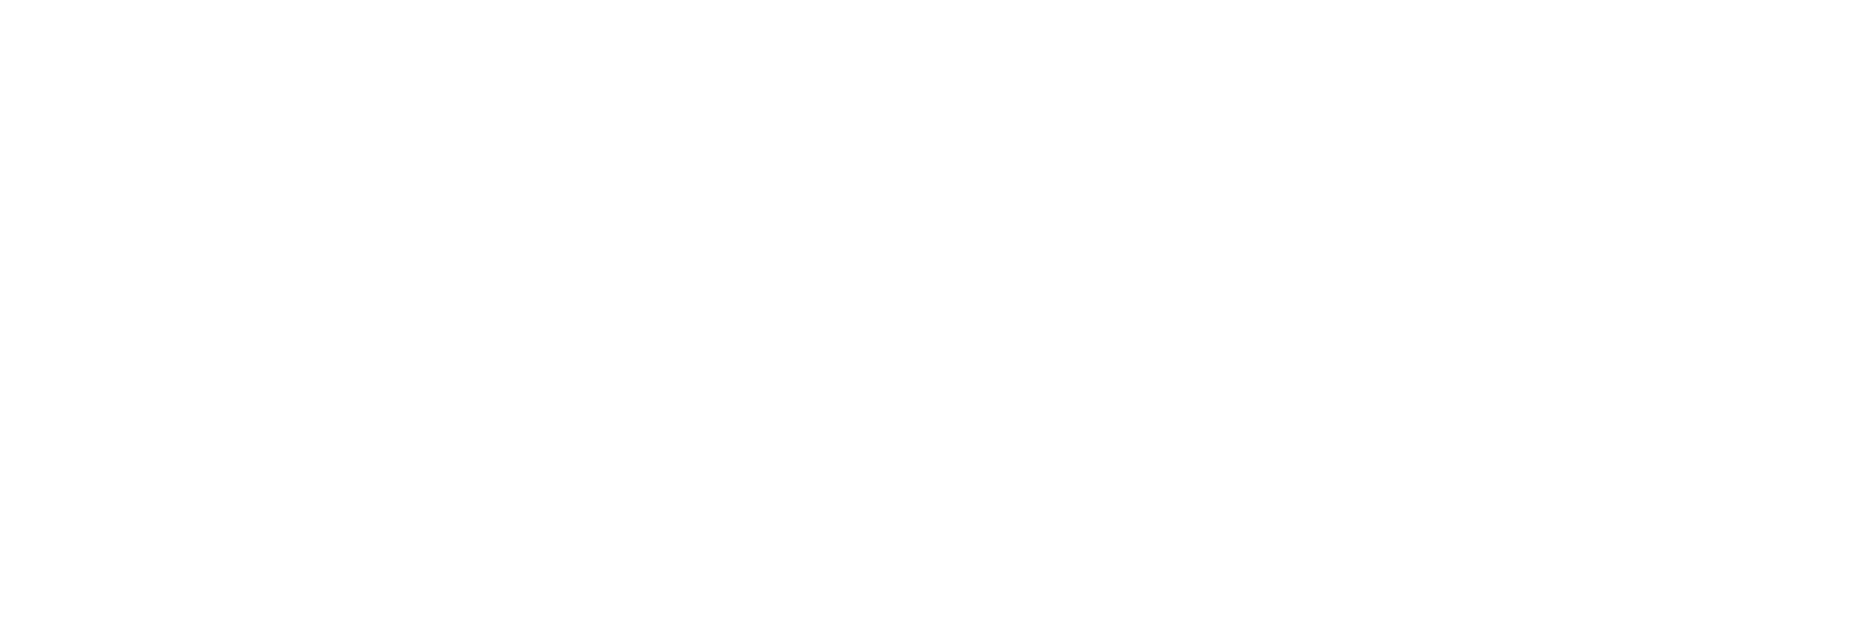 Grammercy Apartment Homes